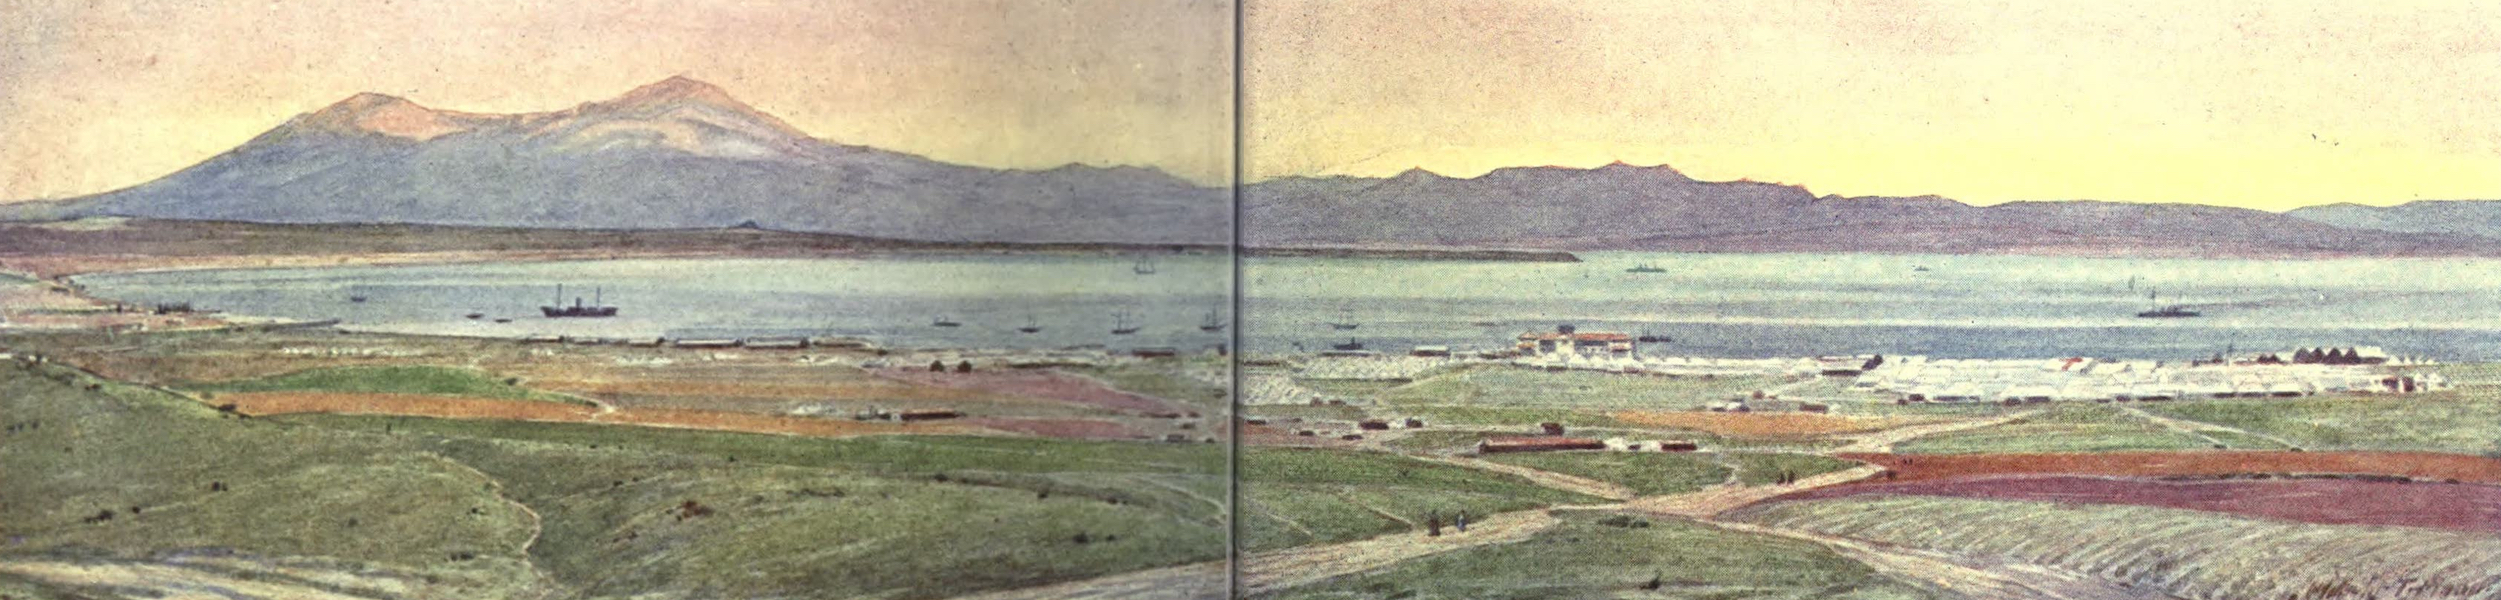 The Salonika Front - Mikra Bay (1920)